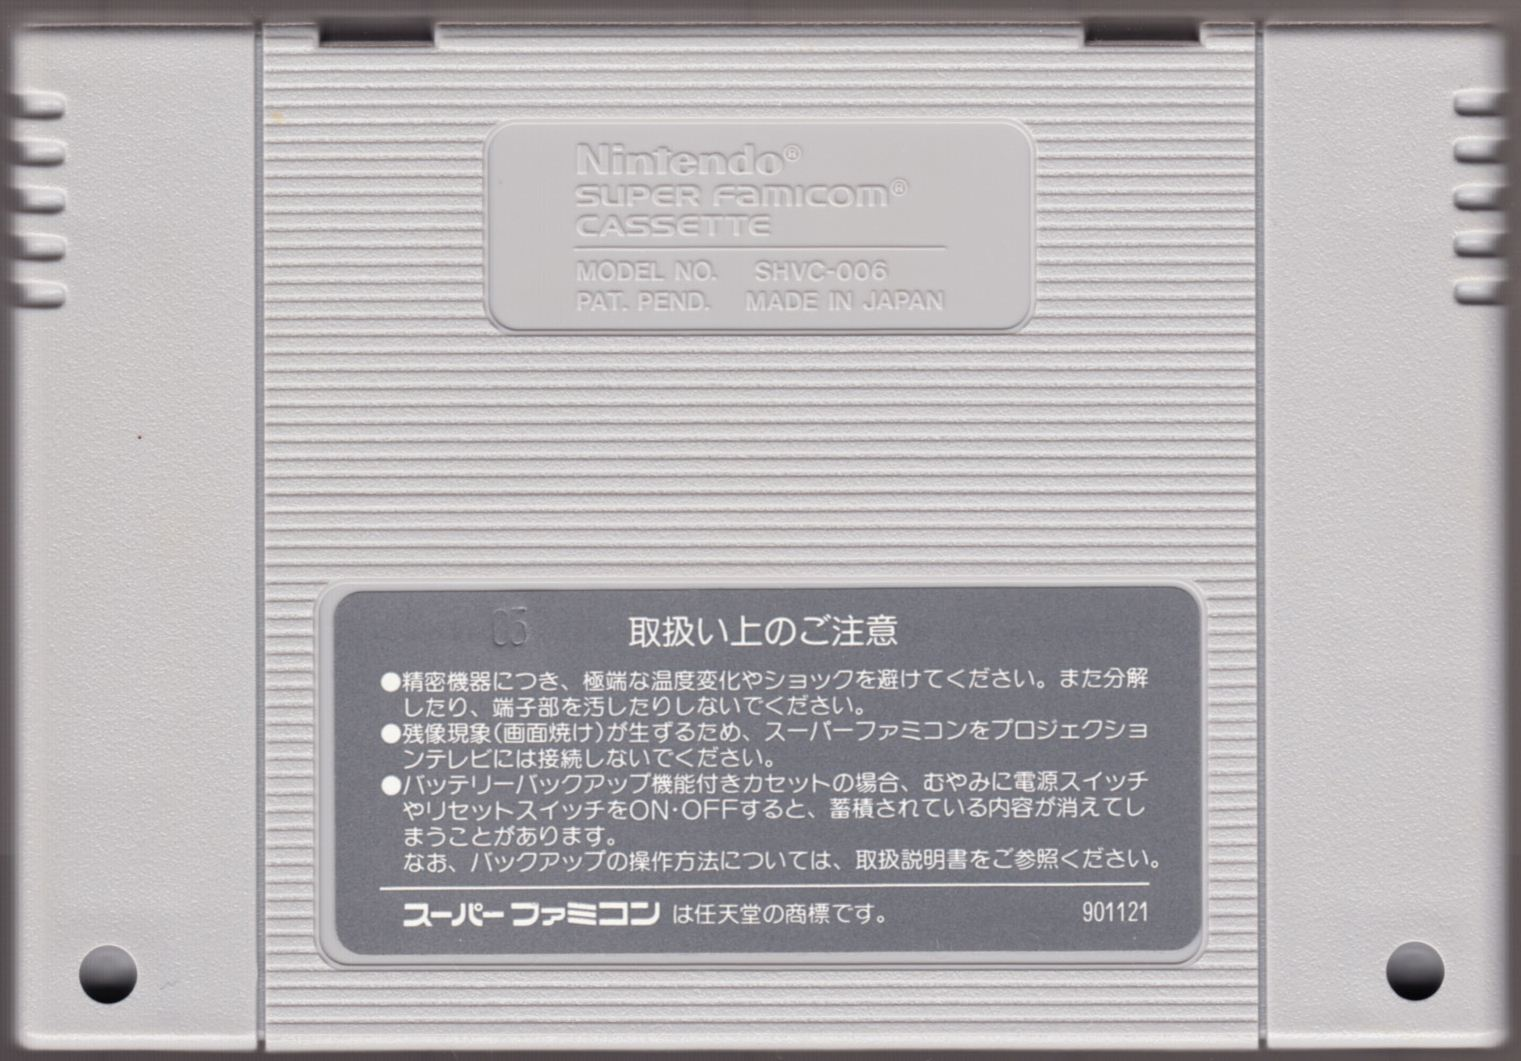 Game - Dungeon Master - JP - Super Famicom - Cartridge With #05 - Back - Scan